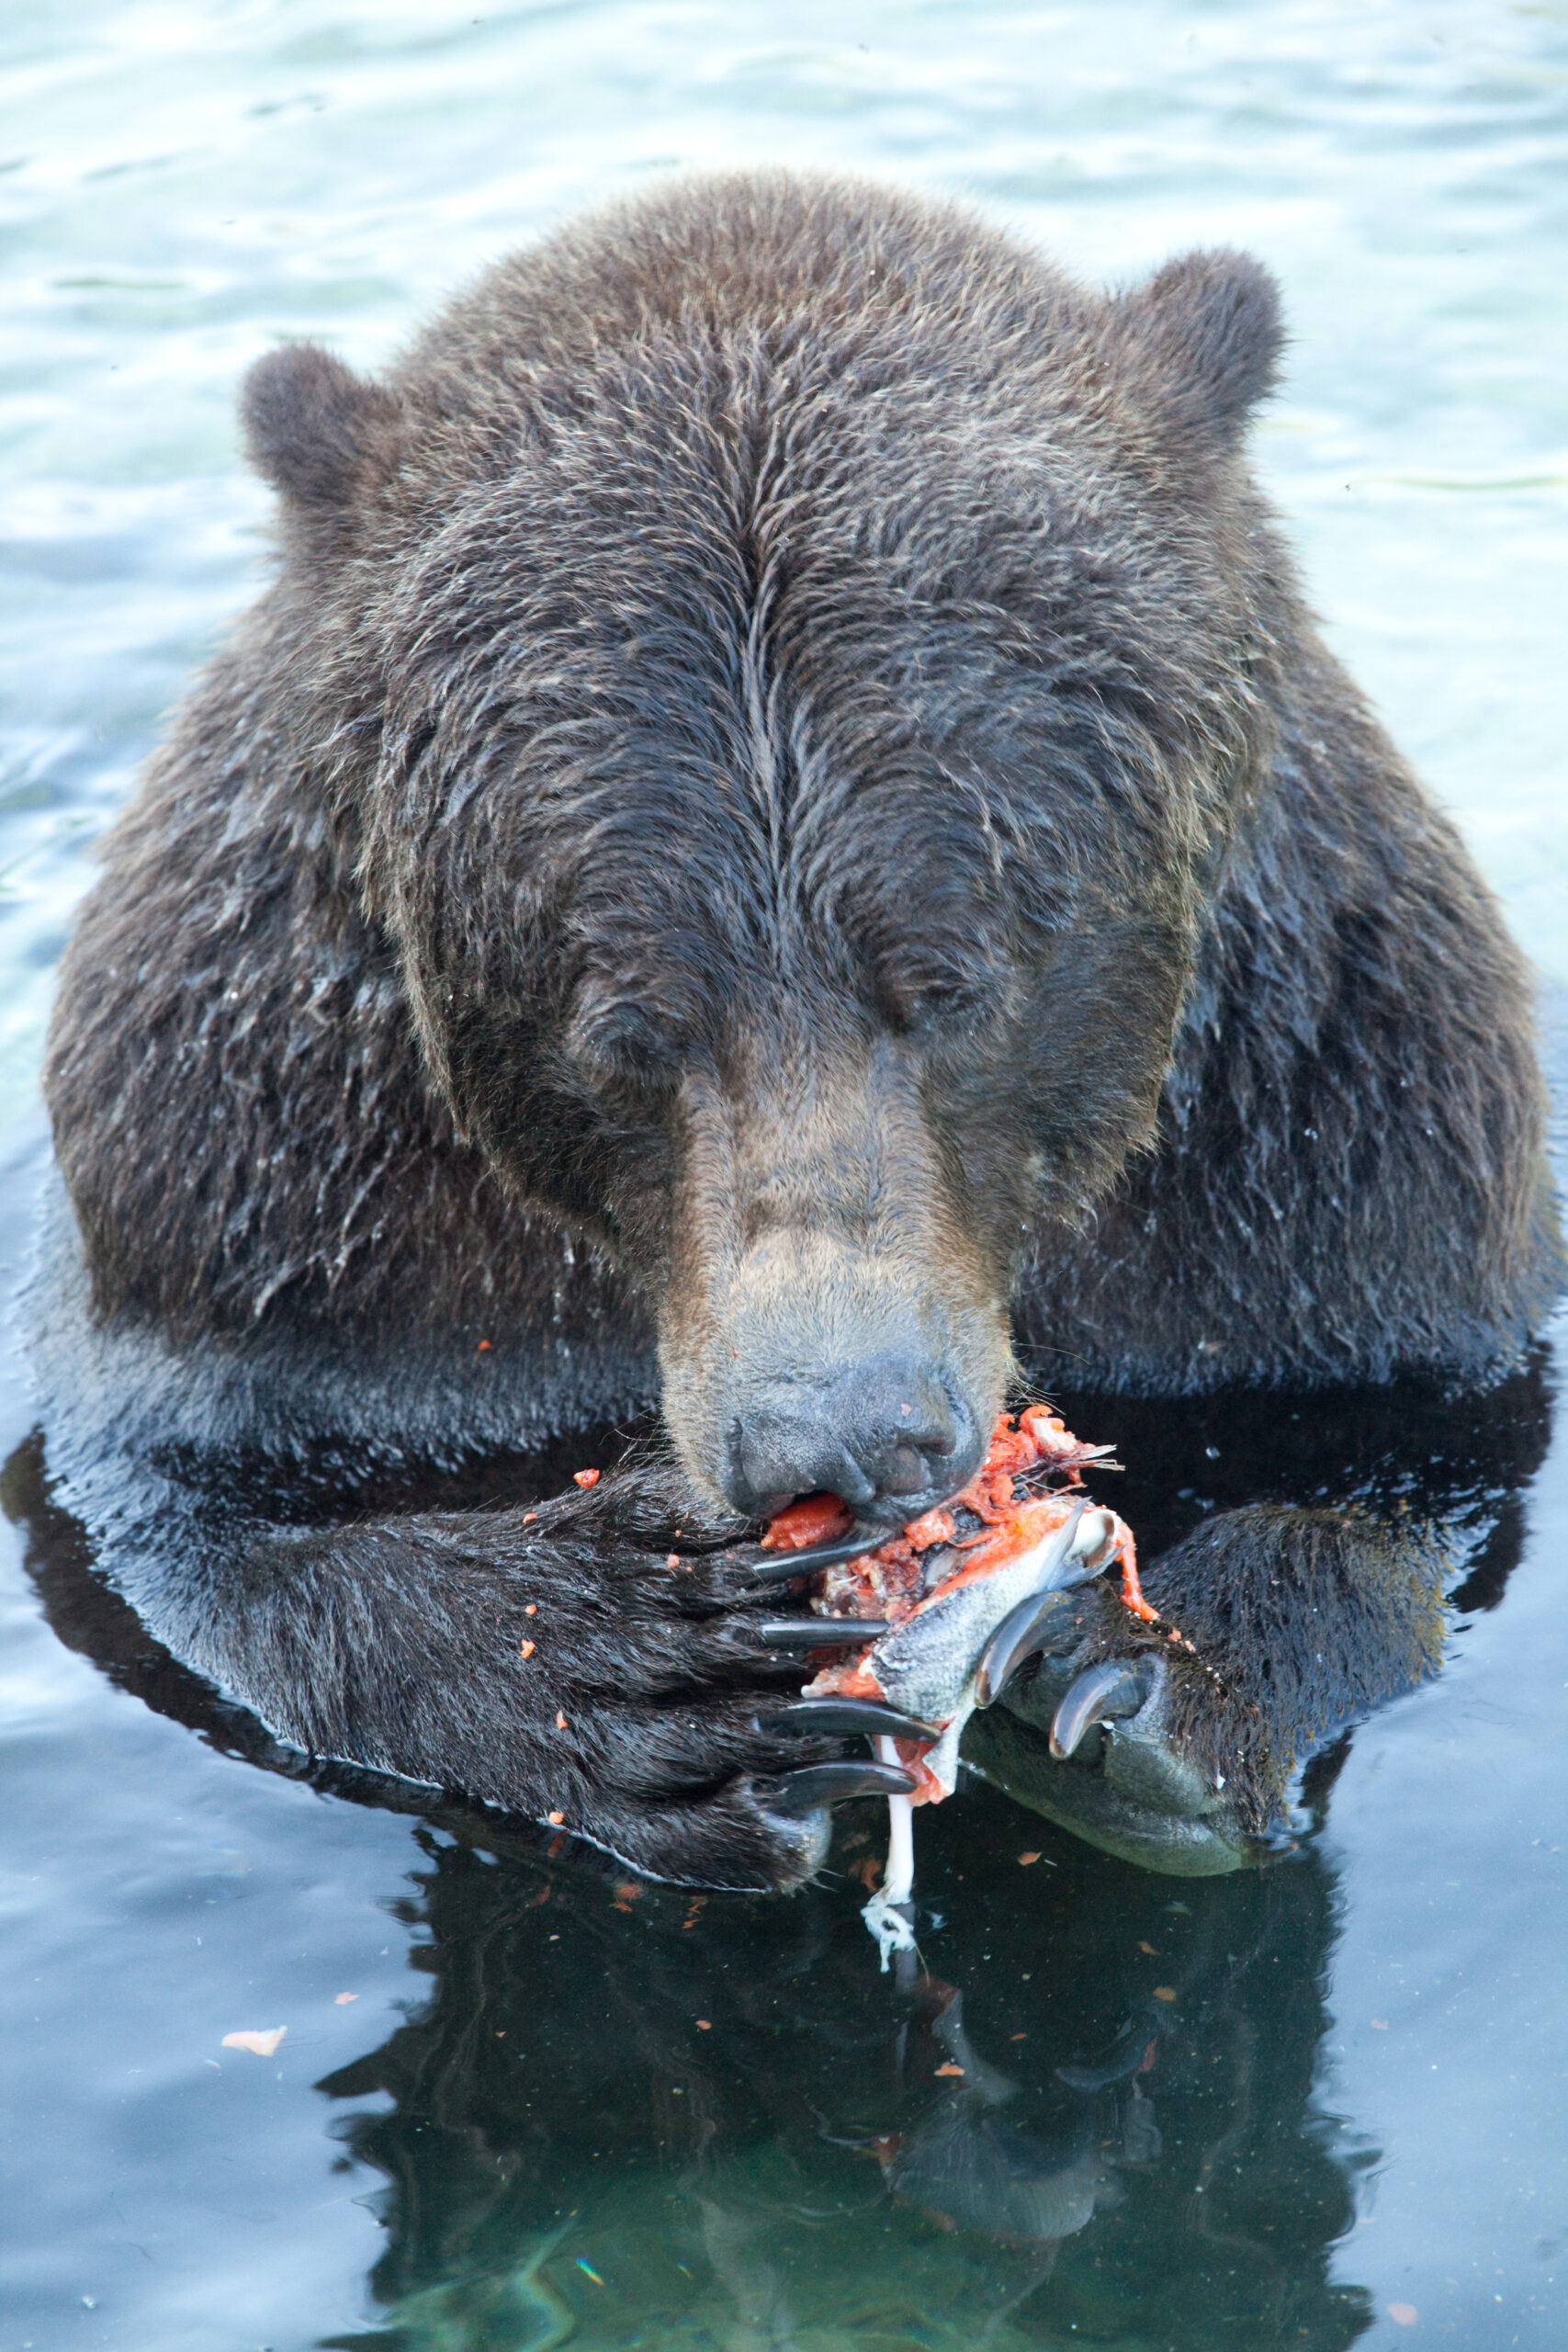 A close up of a grizzly eating a salmon with his paws